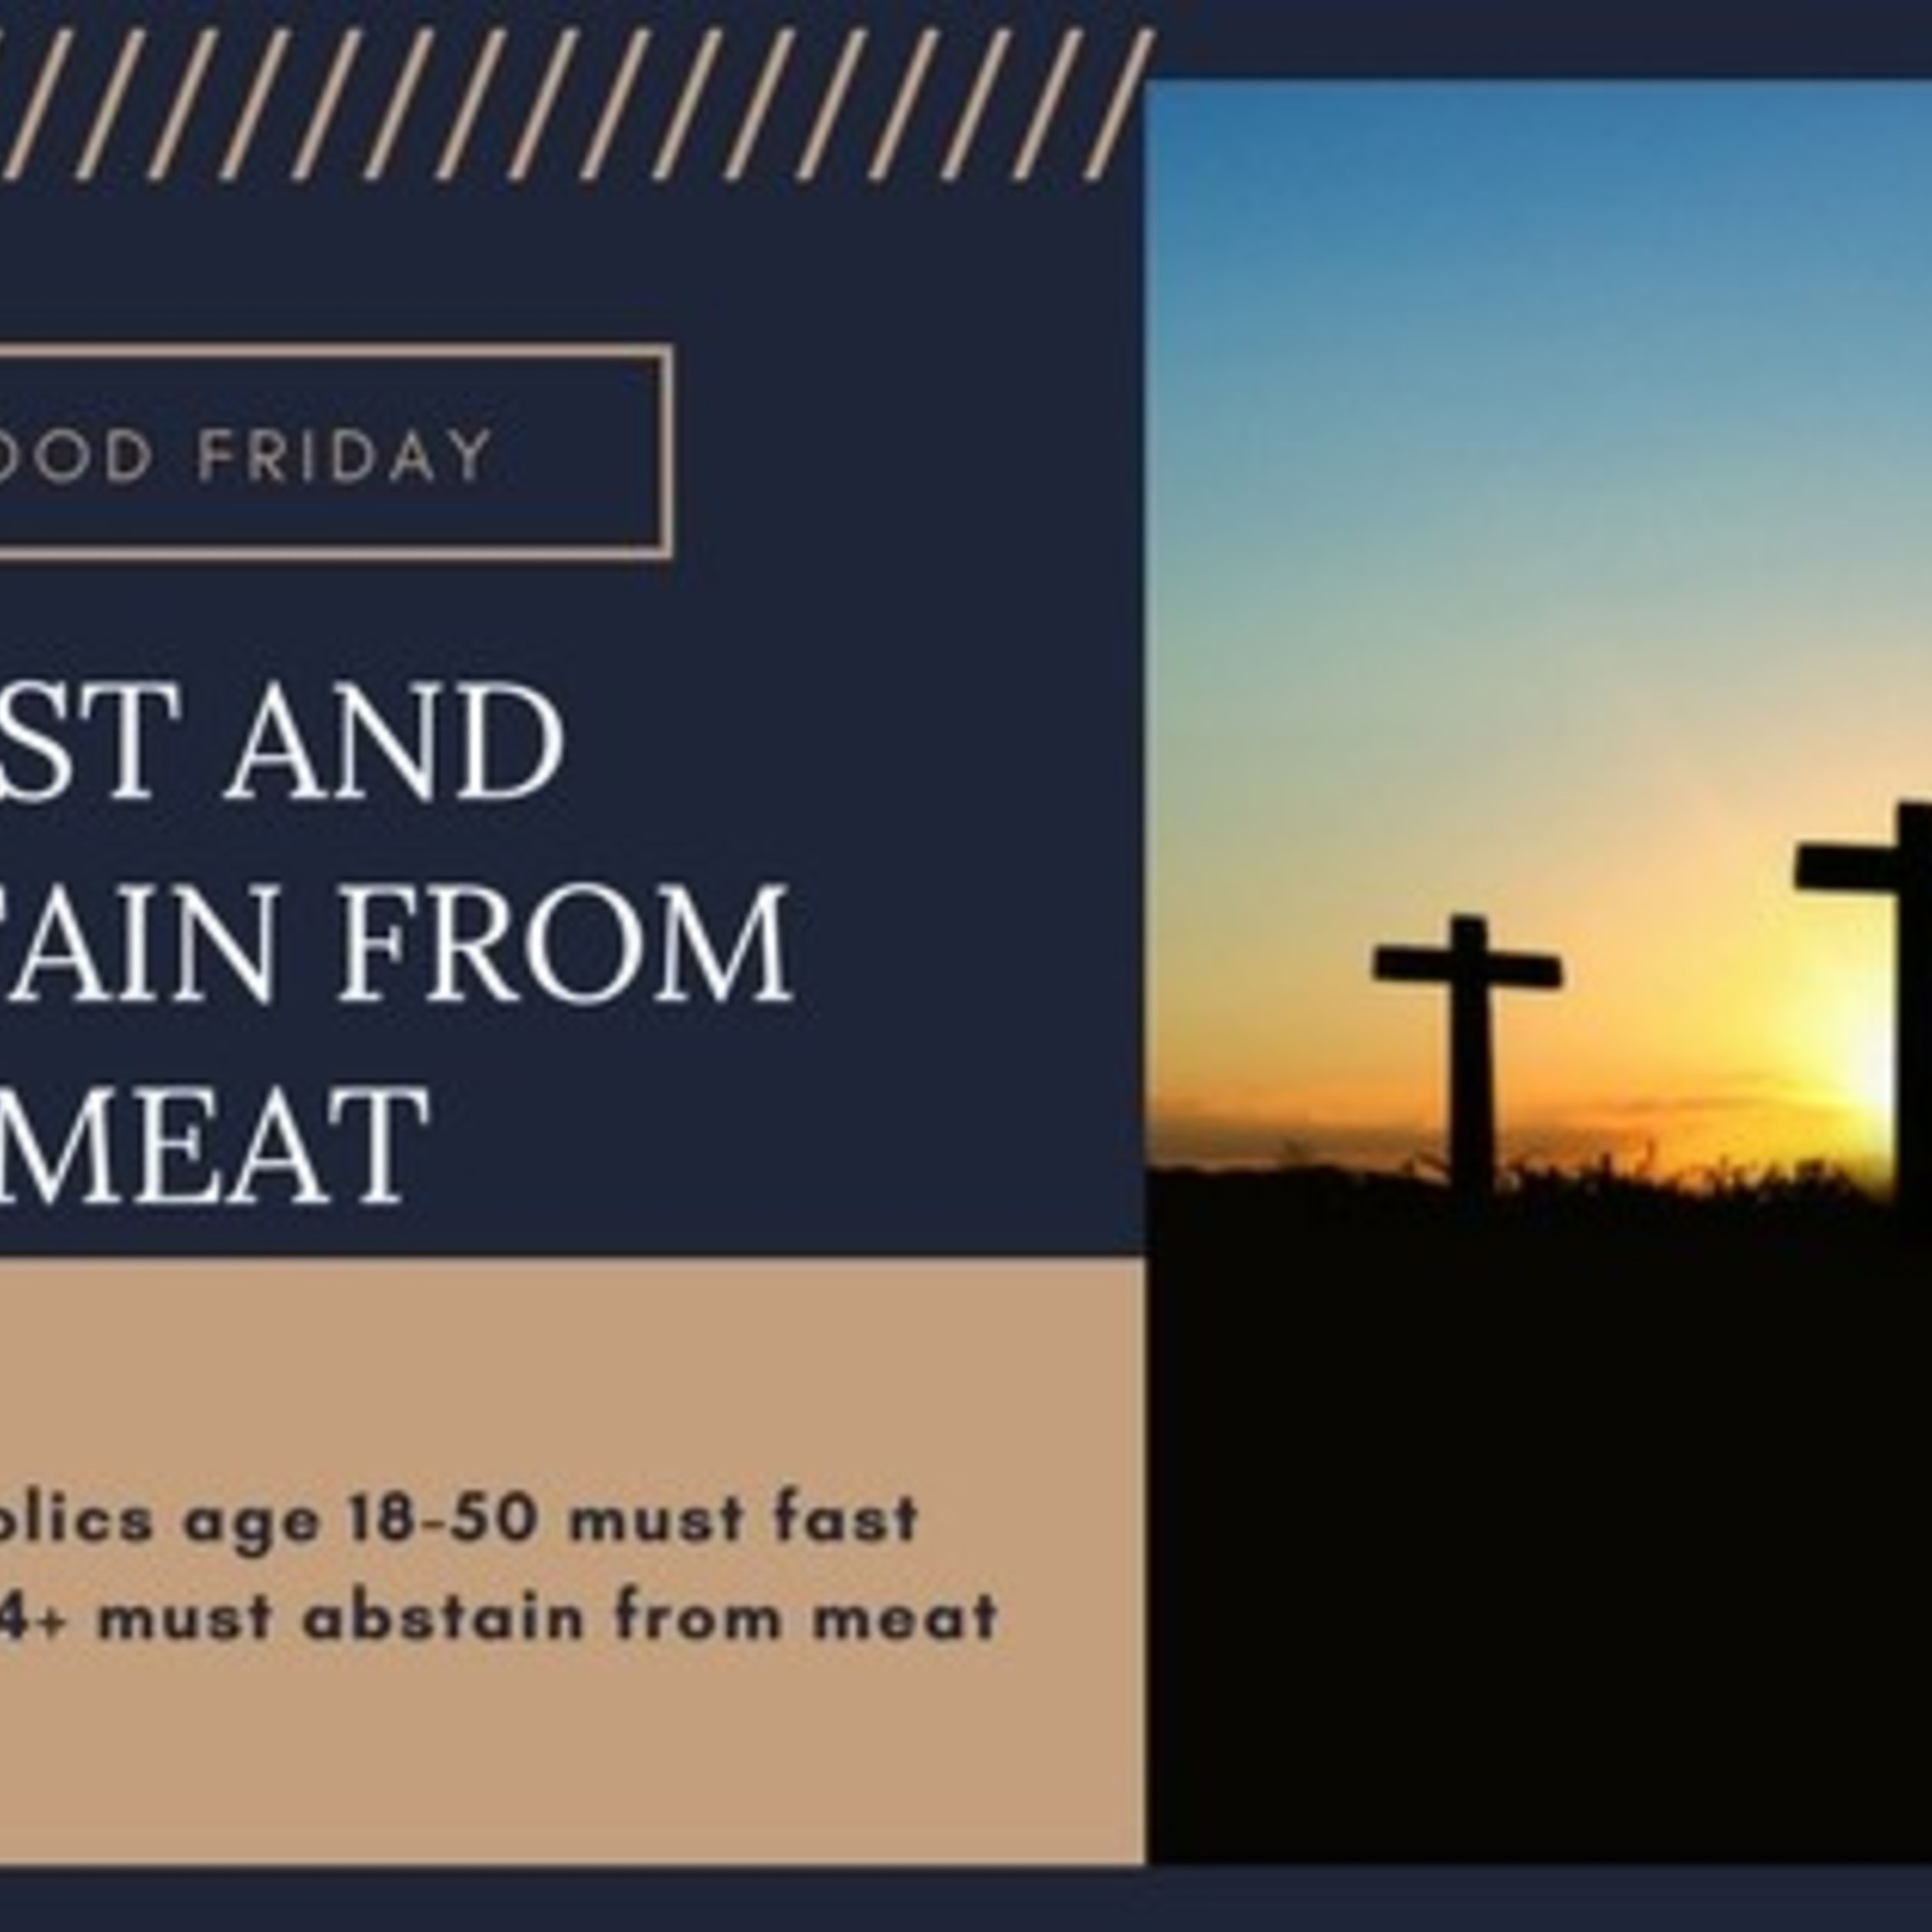 Good Friday   Fasting Norms   Blog